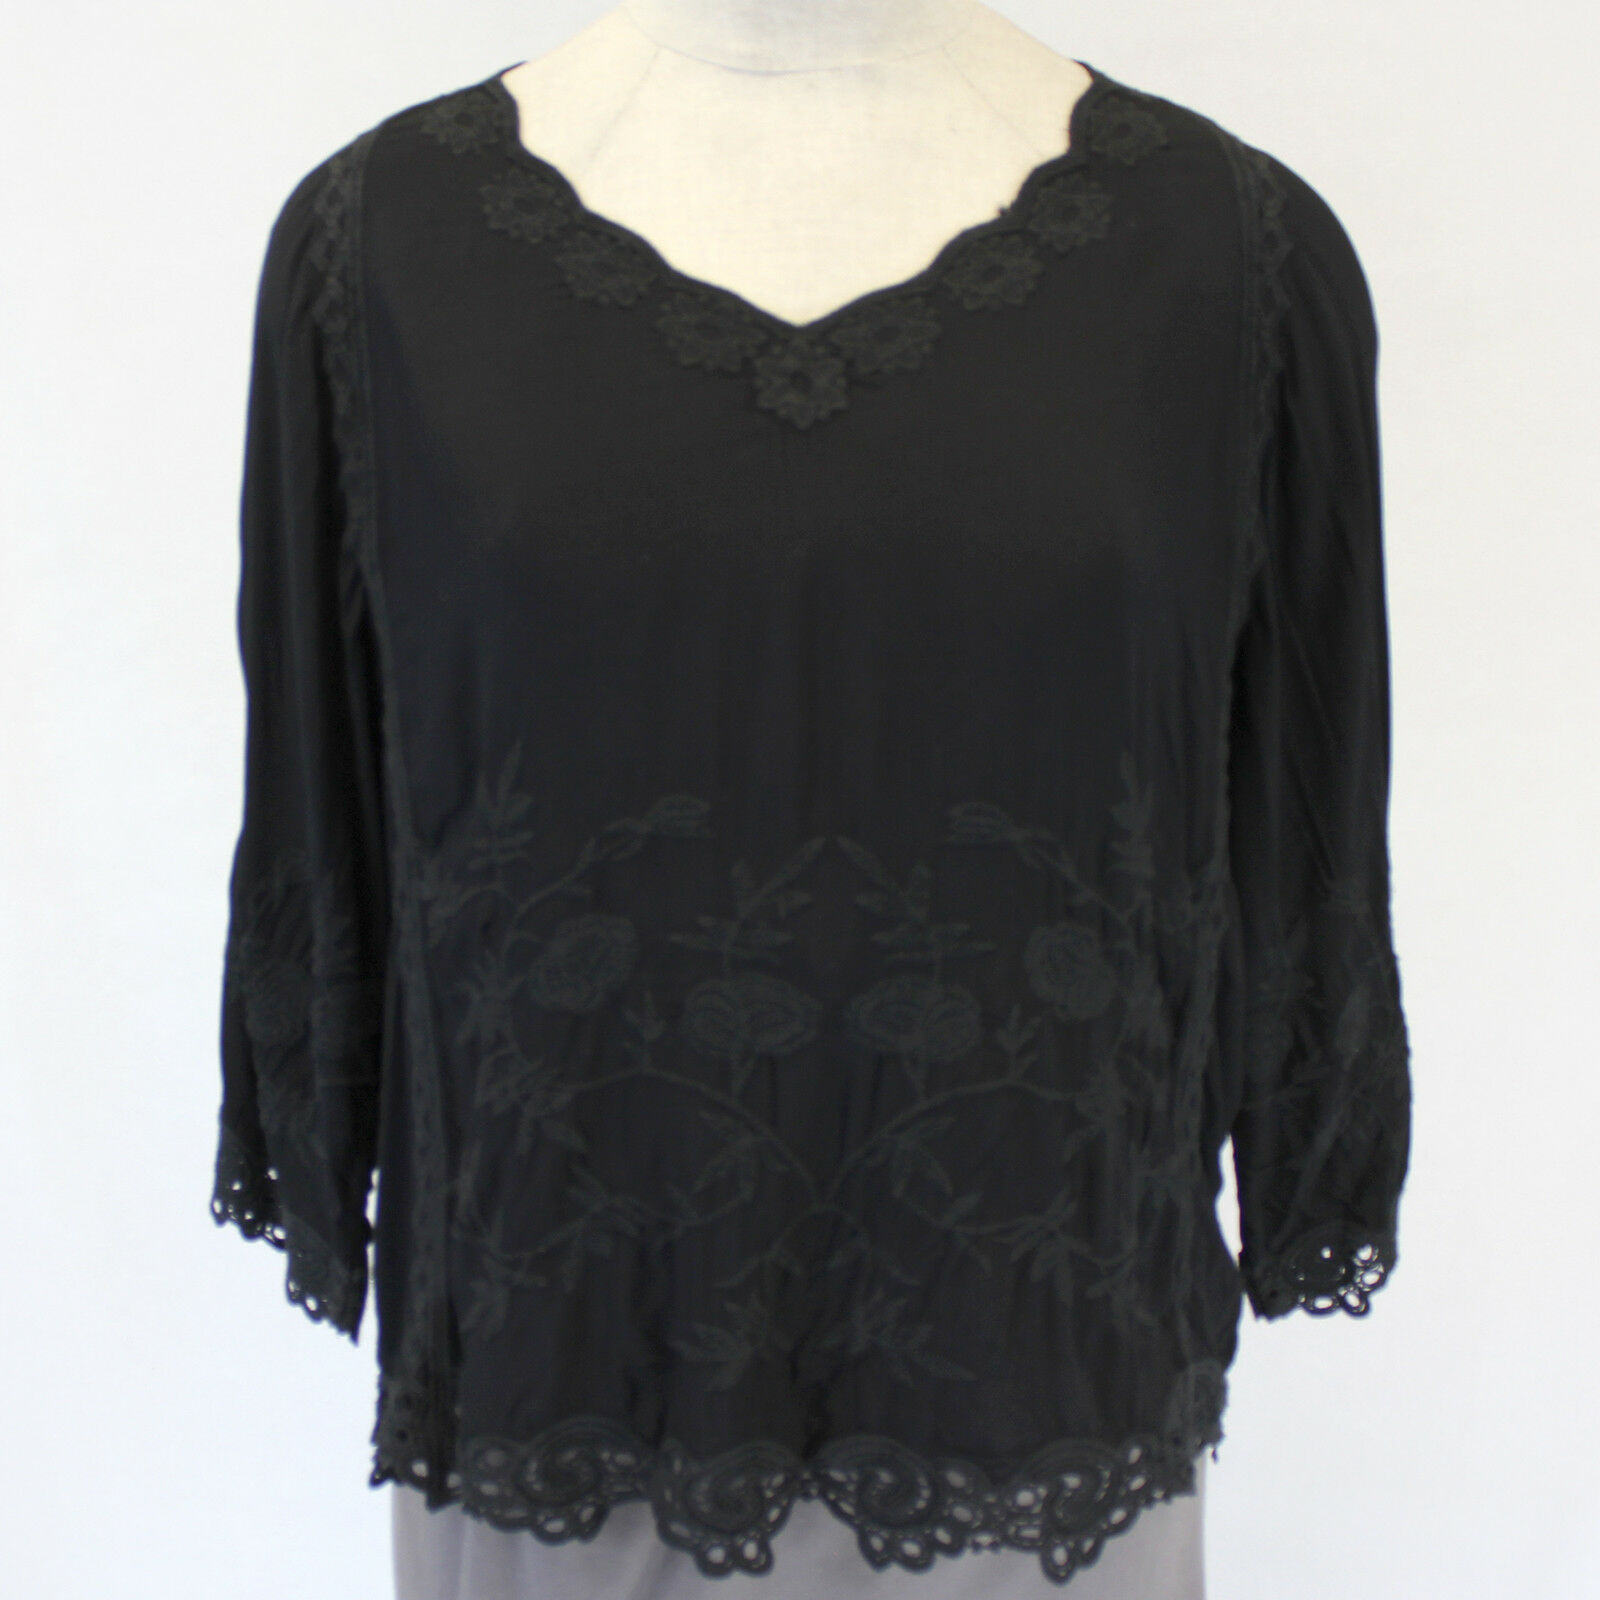 XCVI Plus Größe Embroiderot schwarz Lagenlook Tunic Blouse Top 2X